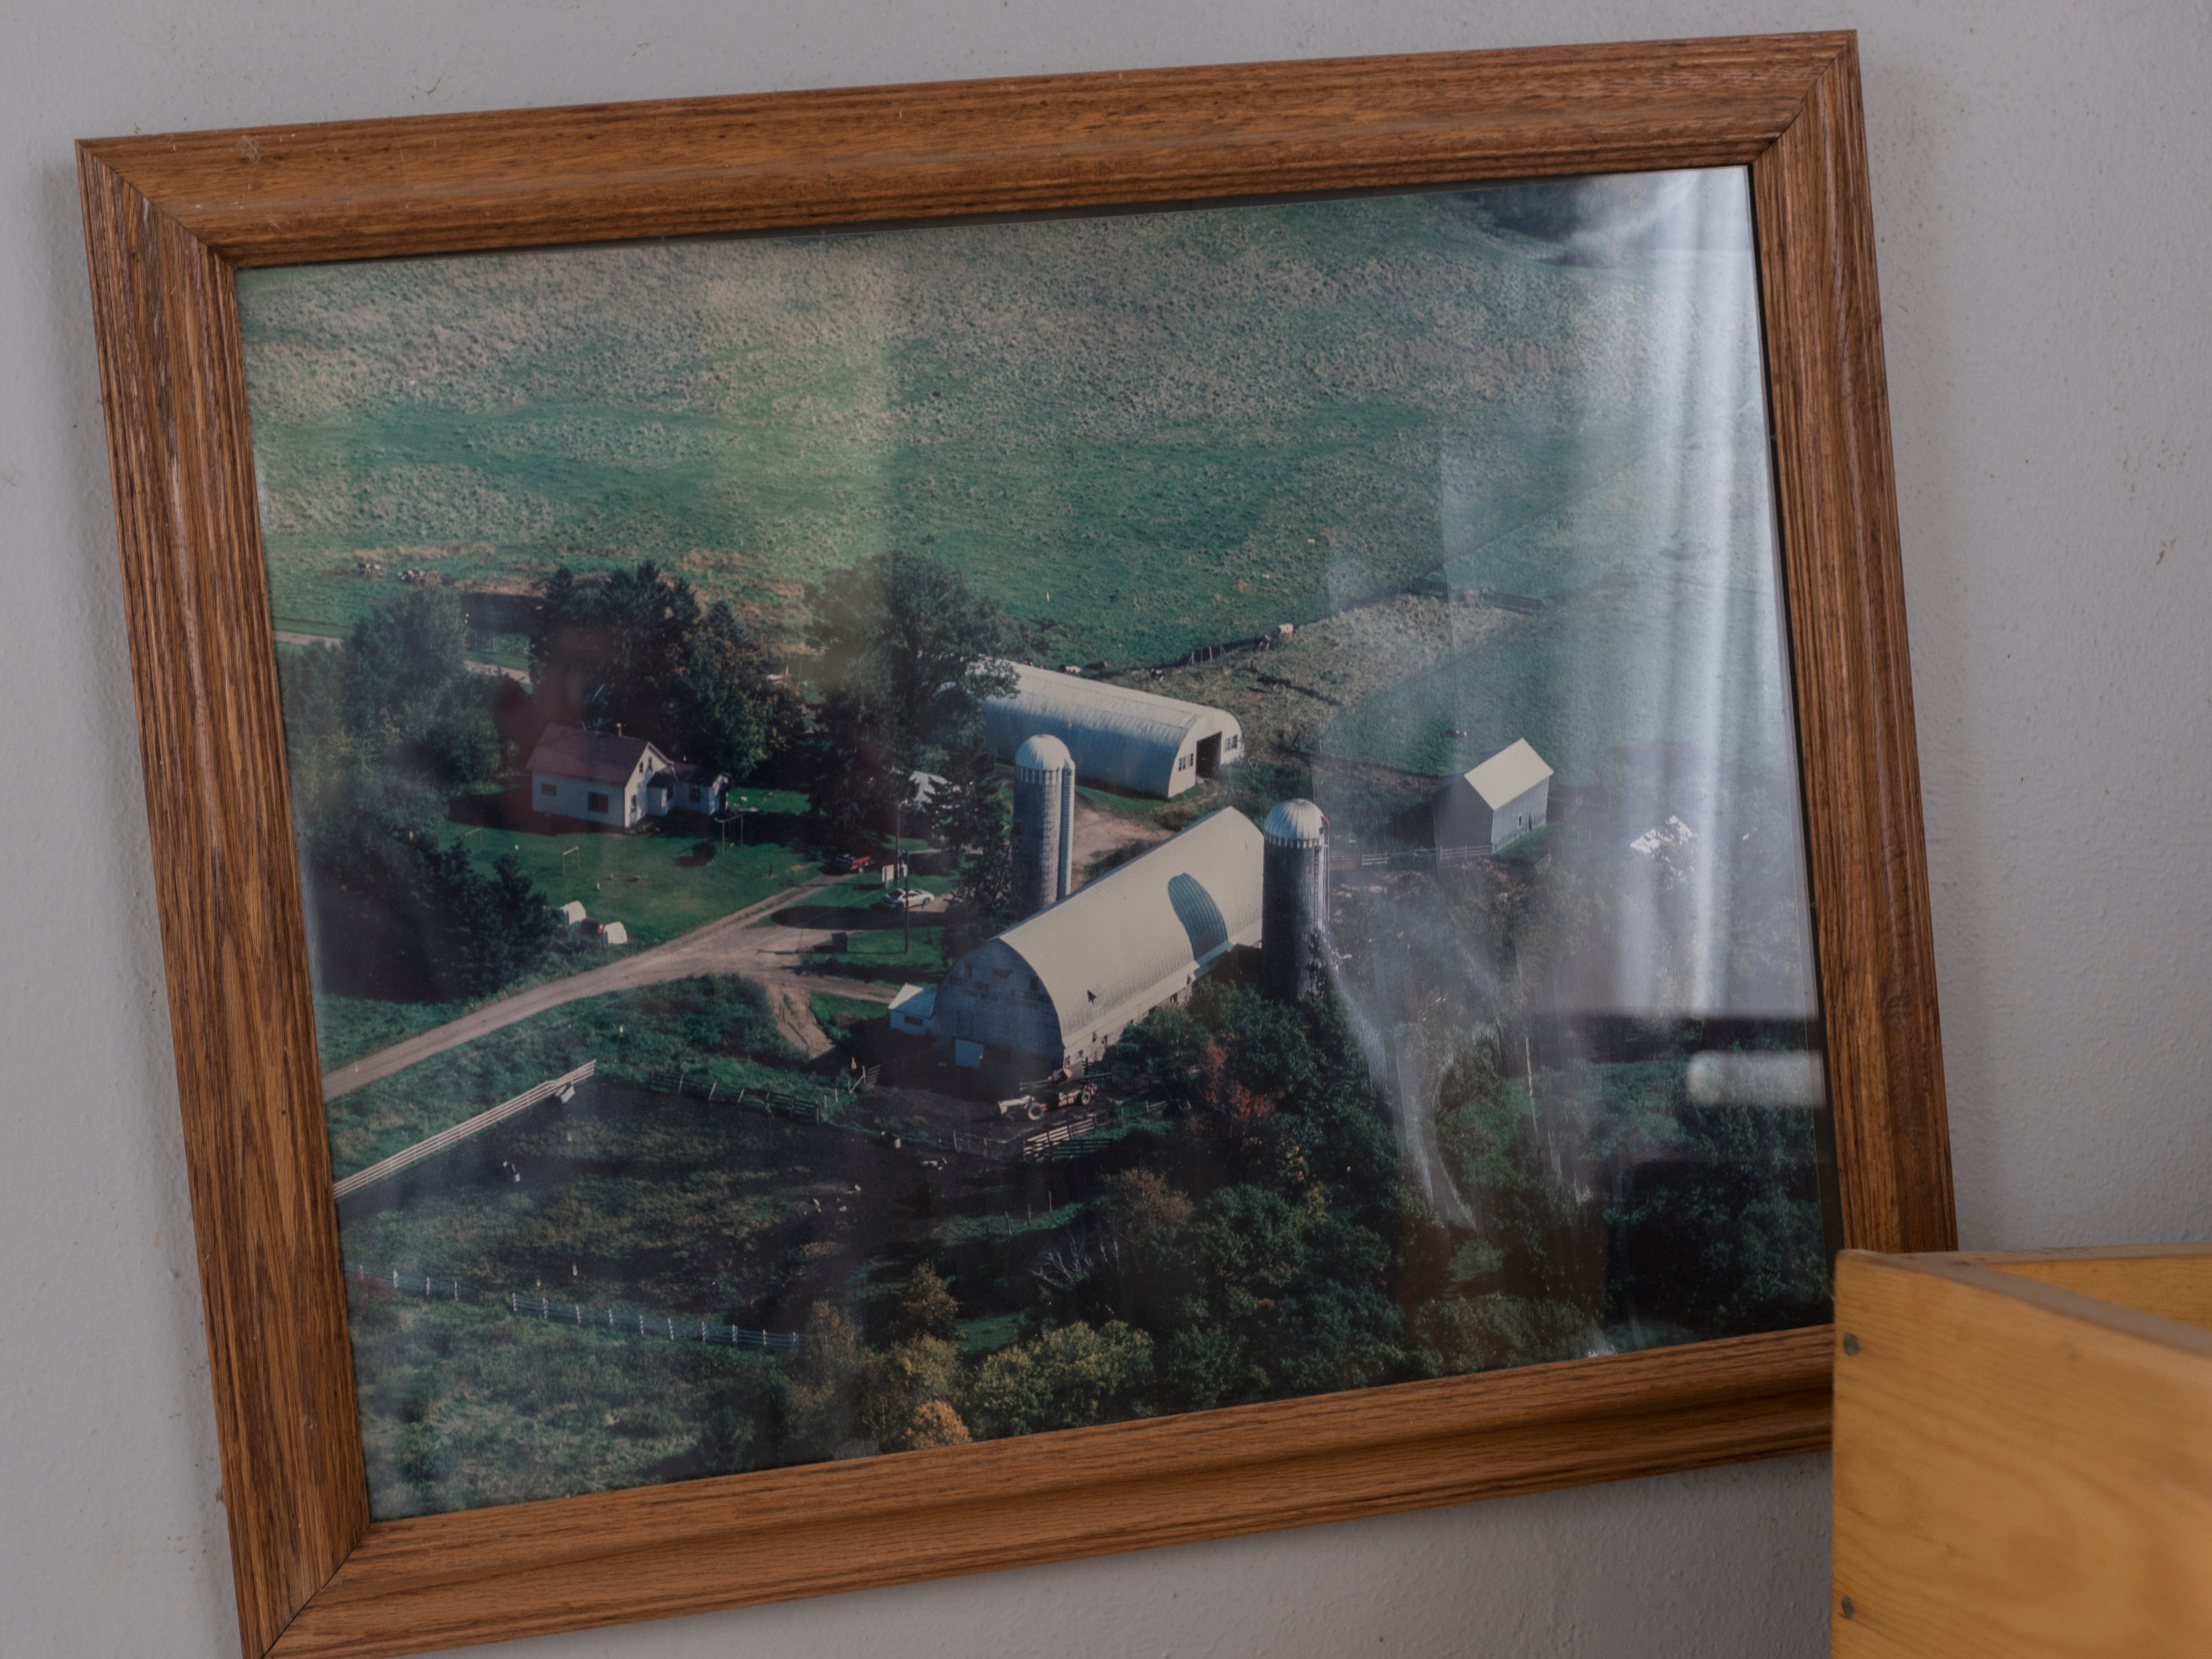 An old aerial photo still hangs in the abandoned farmhouse.